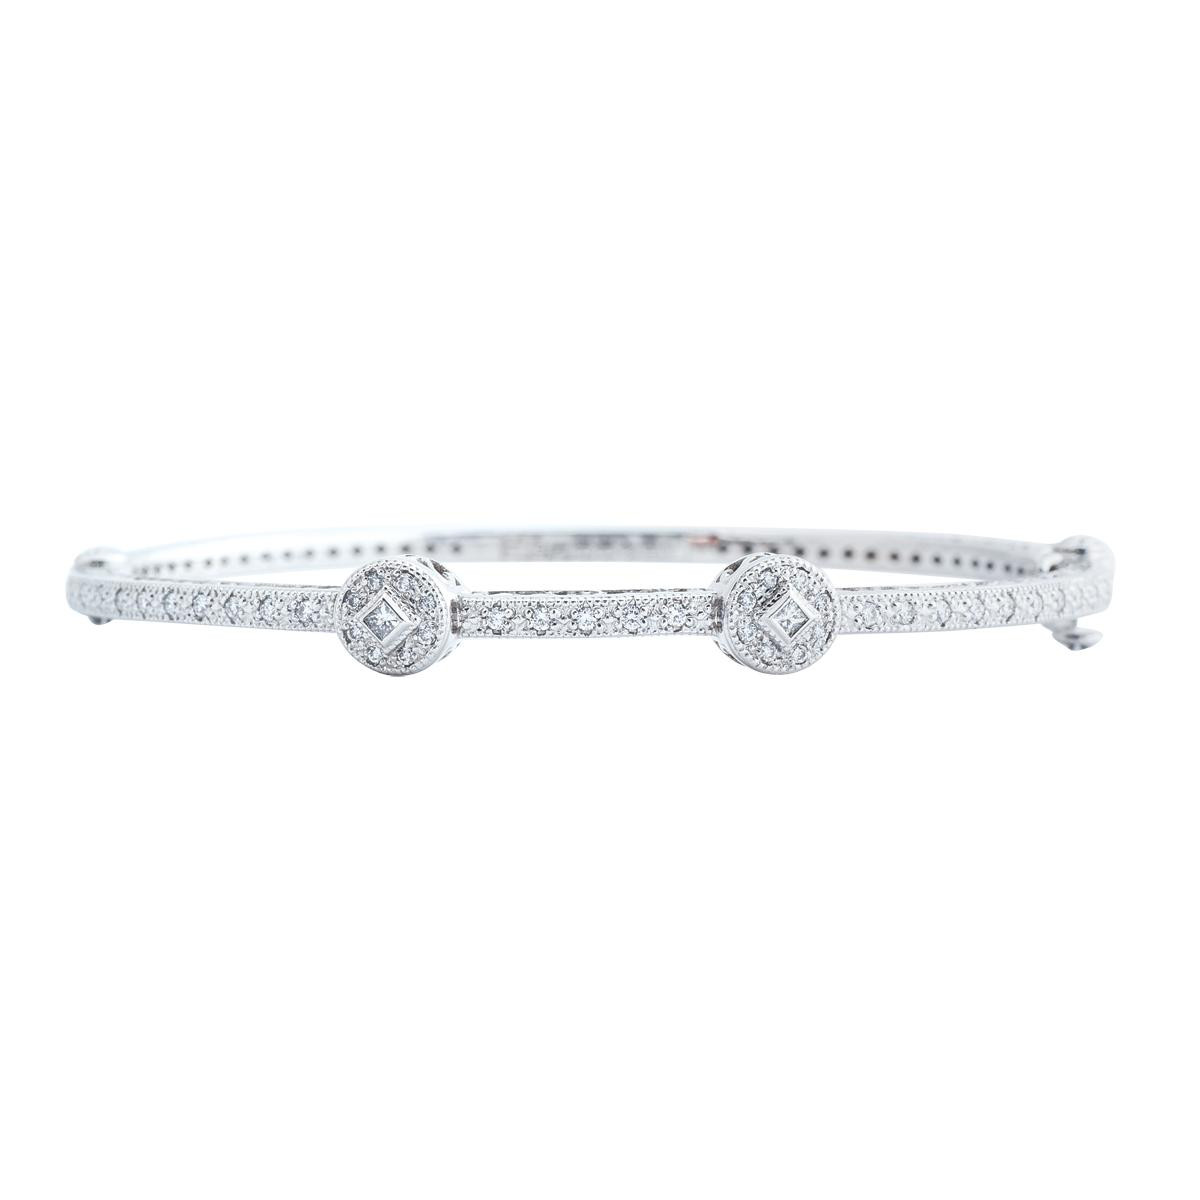 Vintage Charriol 0.40 CTW Diamond Bangle